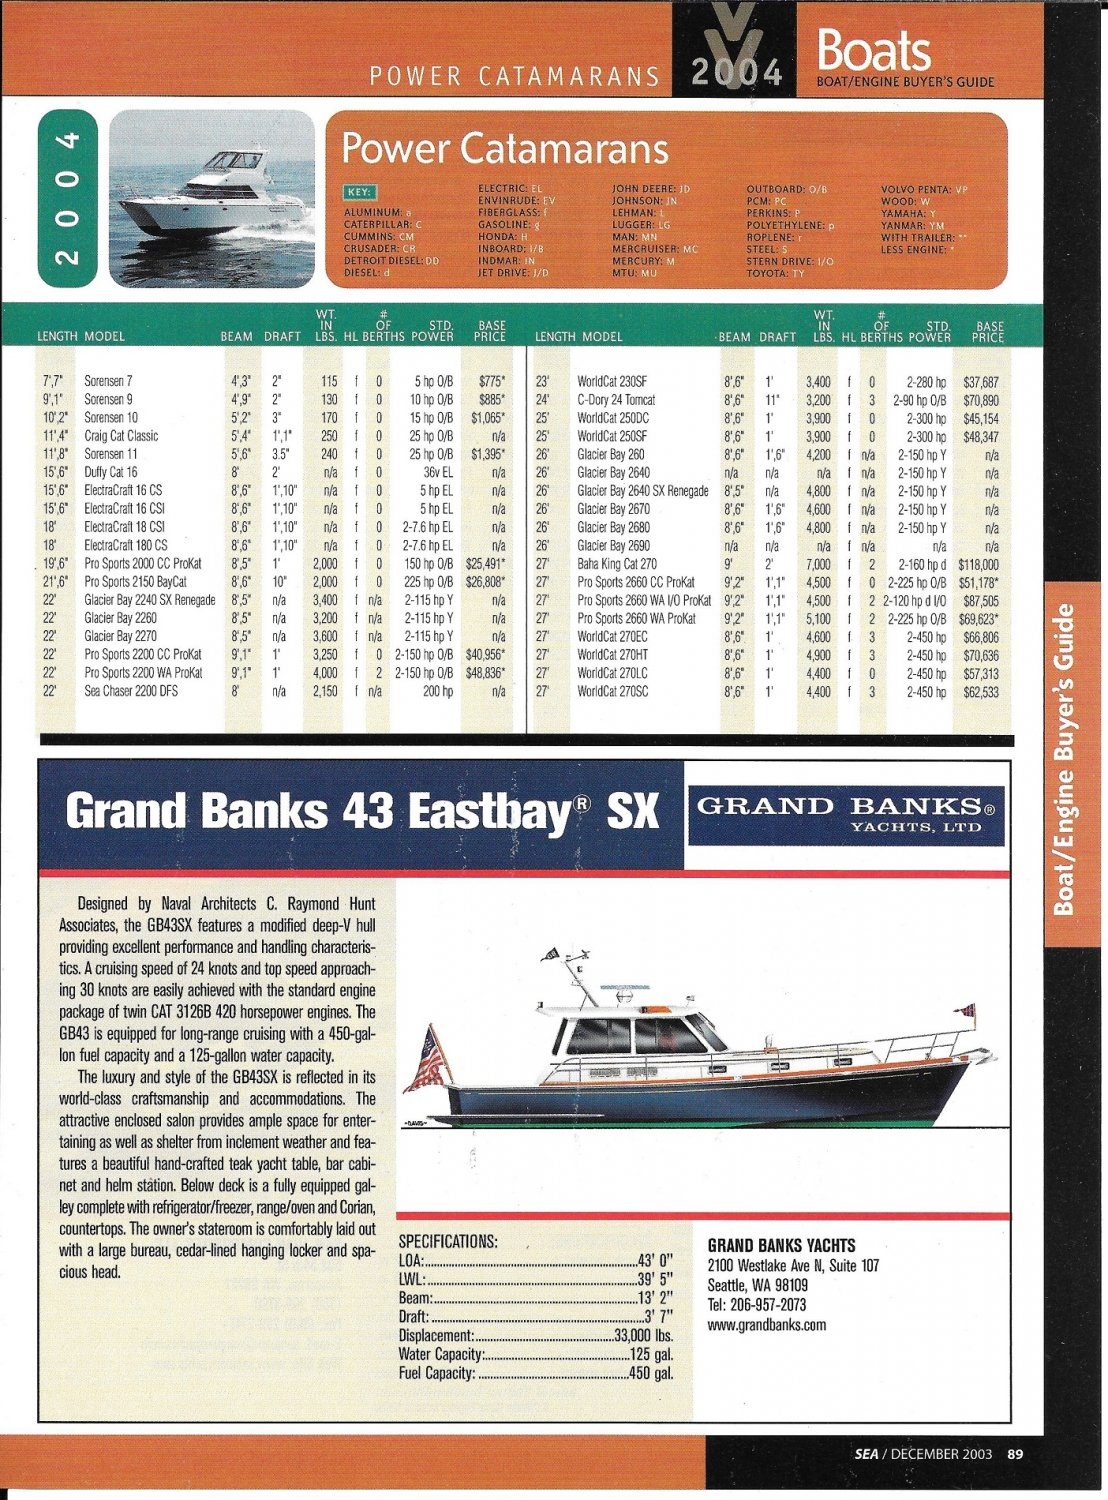 2004 Grand Banks 43 Eastbay SX Yacht Review & Specs- Nice Photo